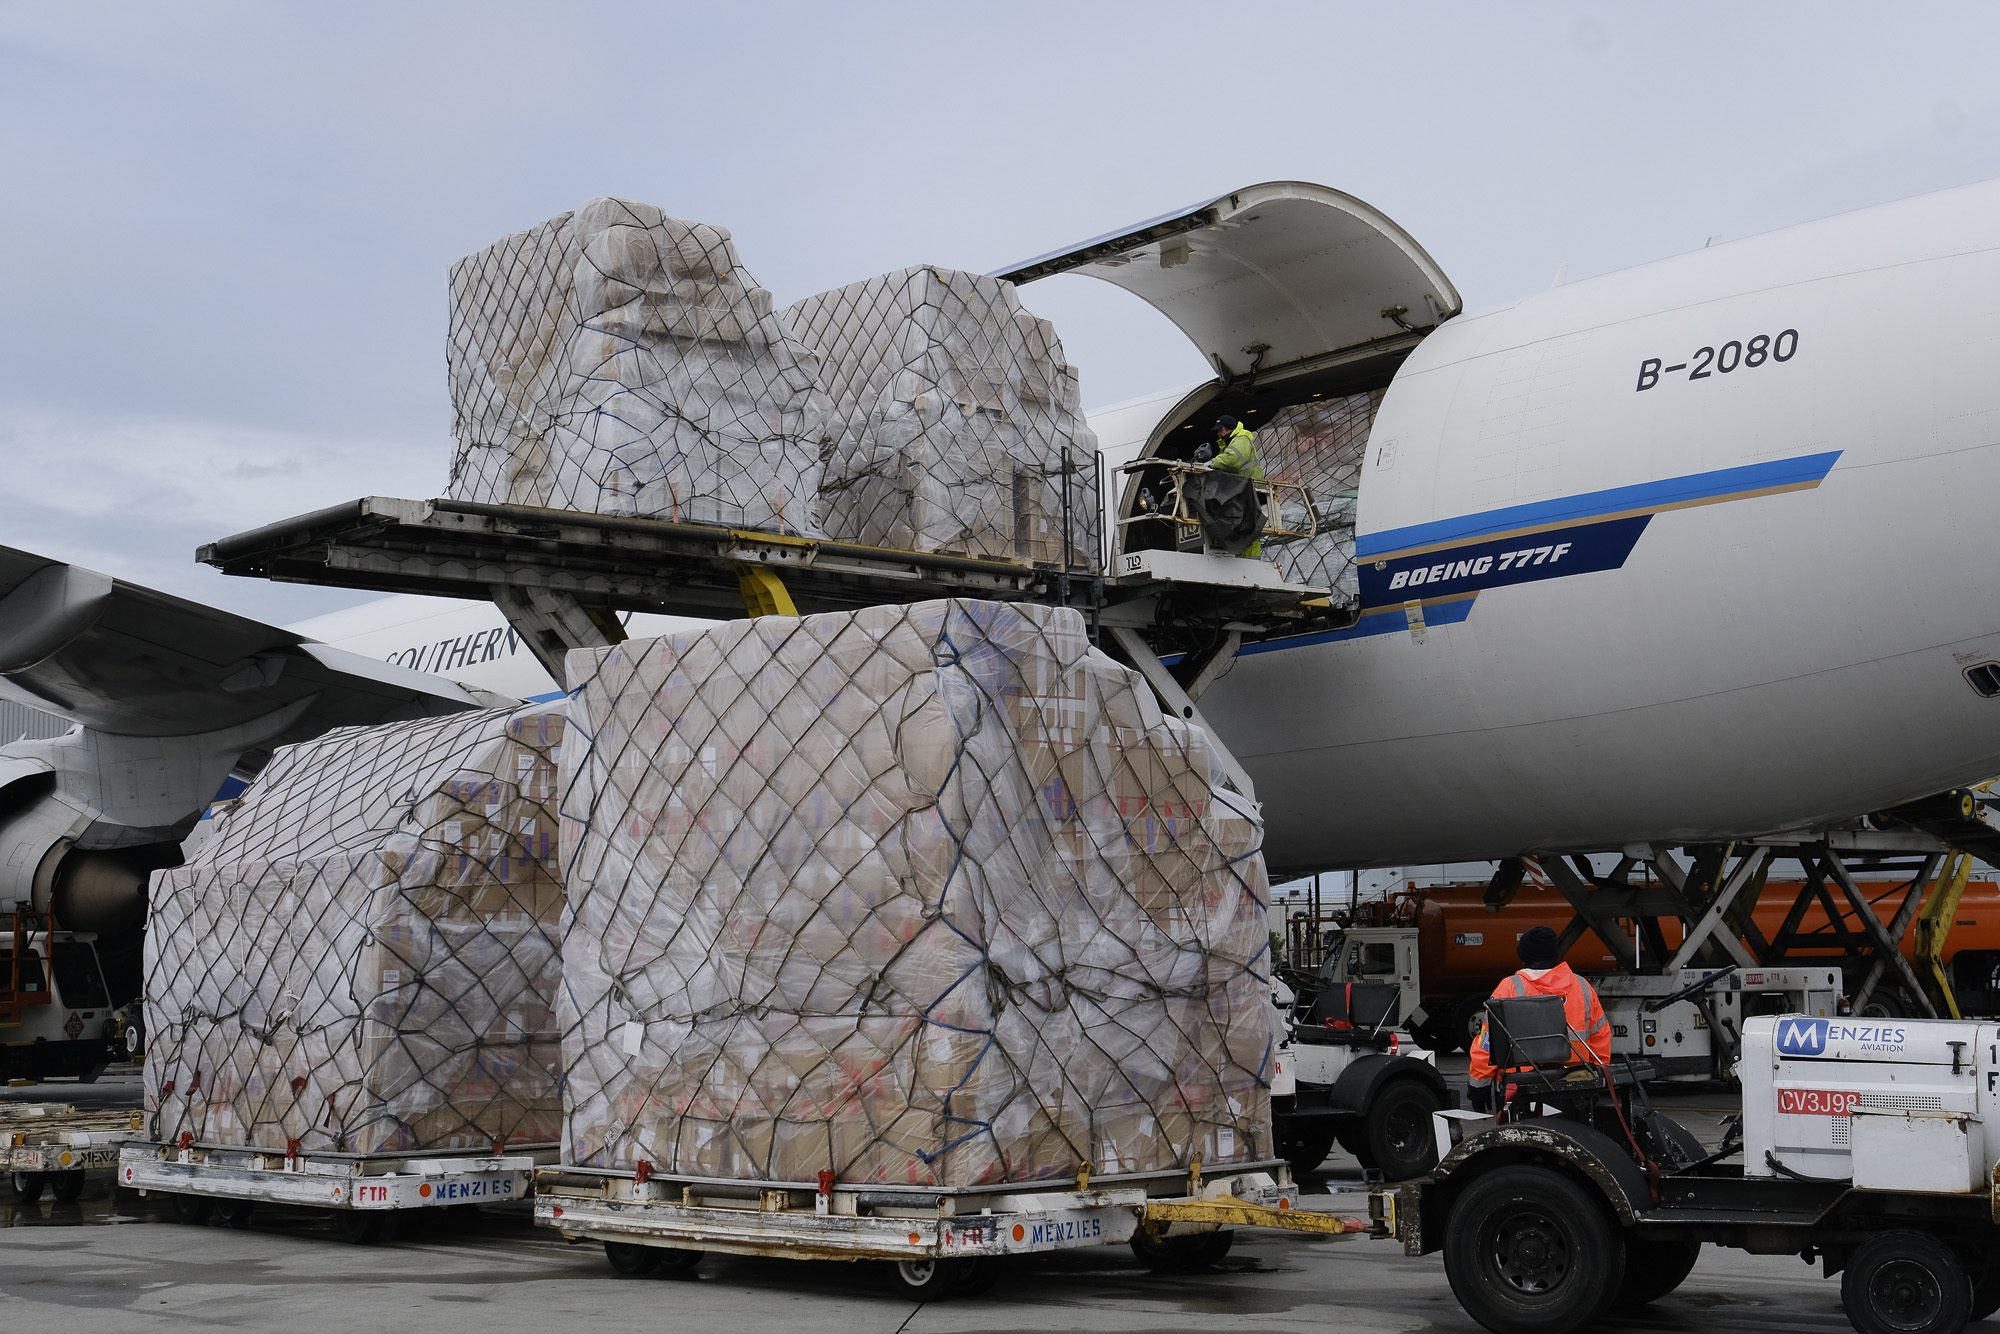 Ground crew at the Los Angeles International airport unload pallets of medical personal protective equipment from a China Southern Cargo plane upon its arrival on April 10, 2020. California has scrambled to cut deals for millions of masks and other gear. AP Photo by Richard Vogel